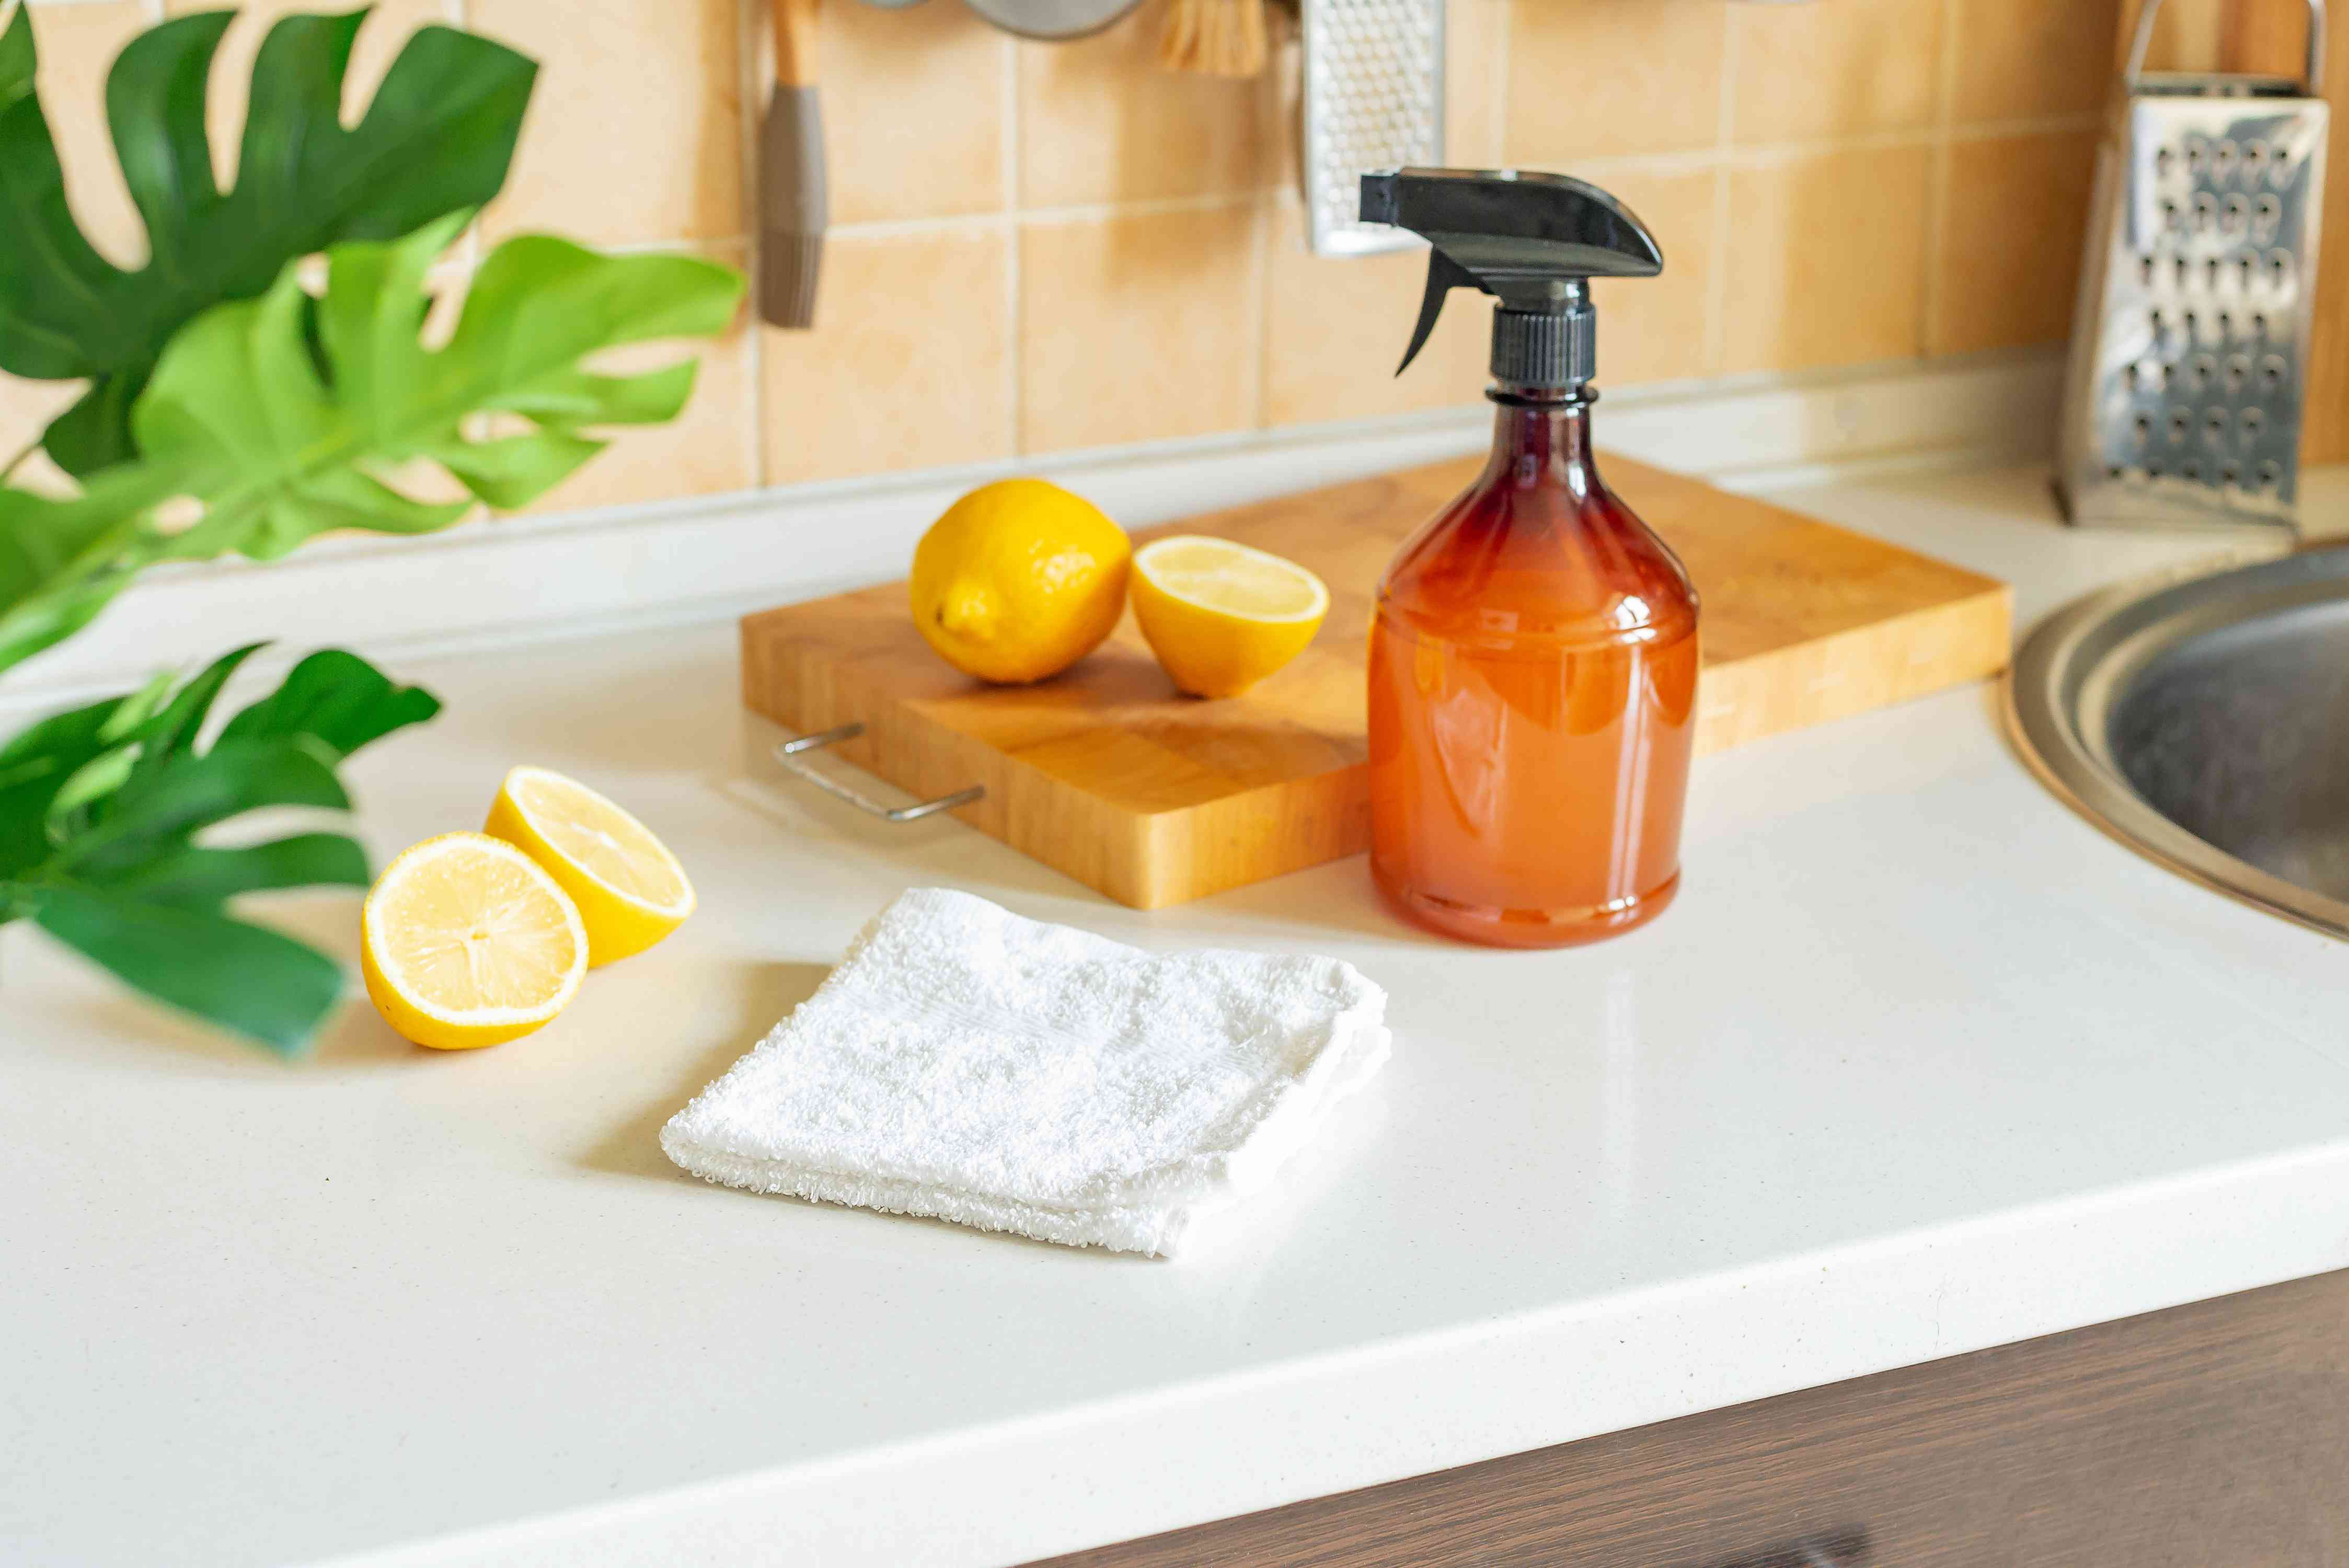 citric acid used in cleaning